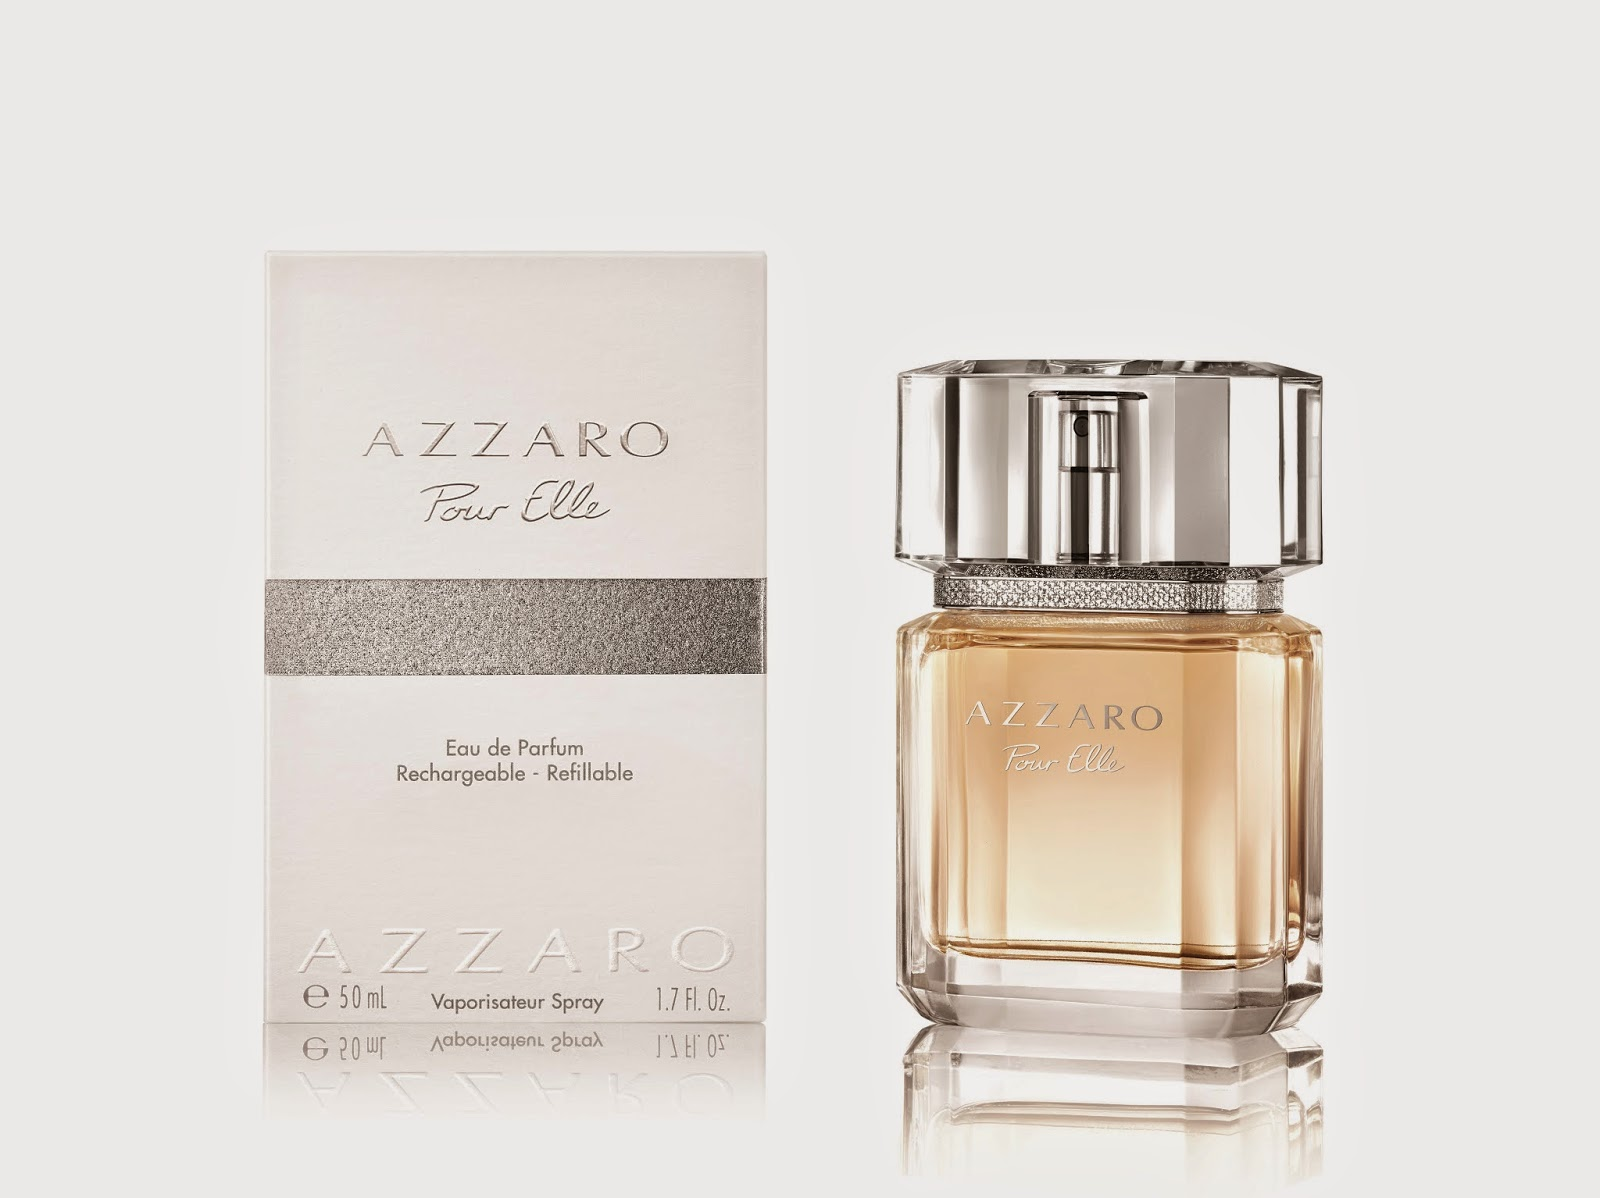 azzaro pour elle azzaro perfume a new fragrance for women 2015. Black Bedroom Furniture Sets. Home Design Ideas